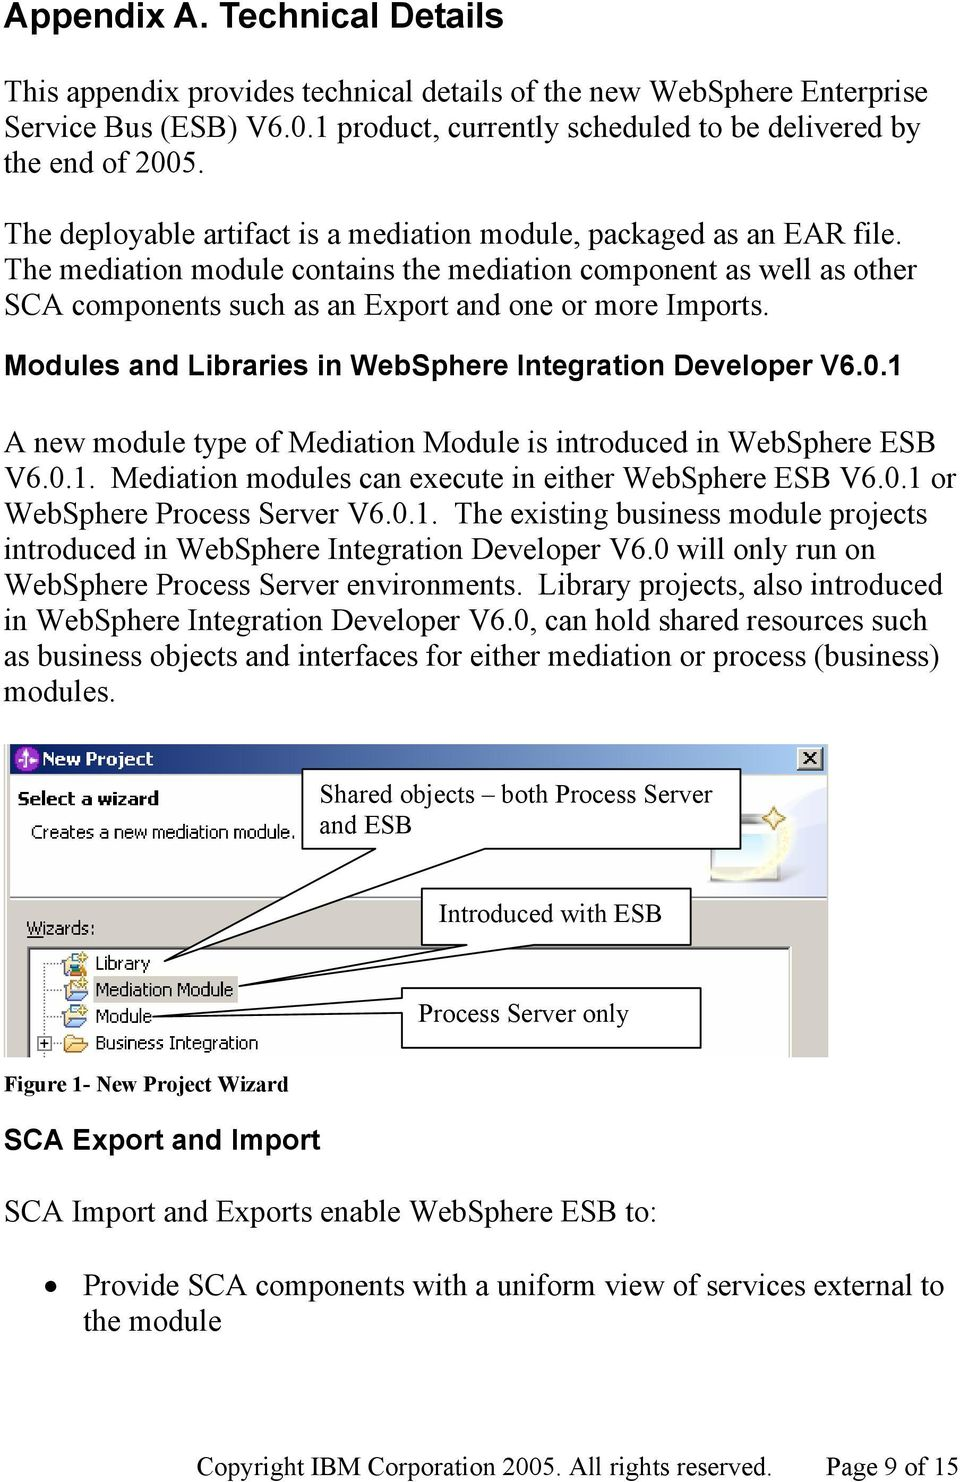 Modules and Libraries in WebSphere Integration Developer V6.0.1 A new module type of Mediation Module is introduced in WebSphere ESB V6.0.1. Mediation modules can execute in either WebSphere ESB V6.0.1 or WebSphere Process Server V6.